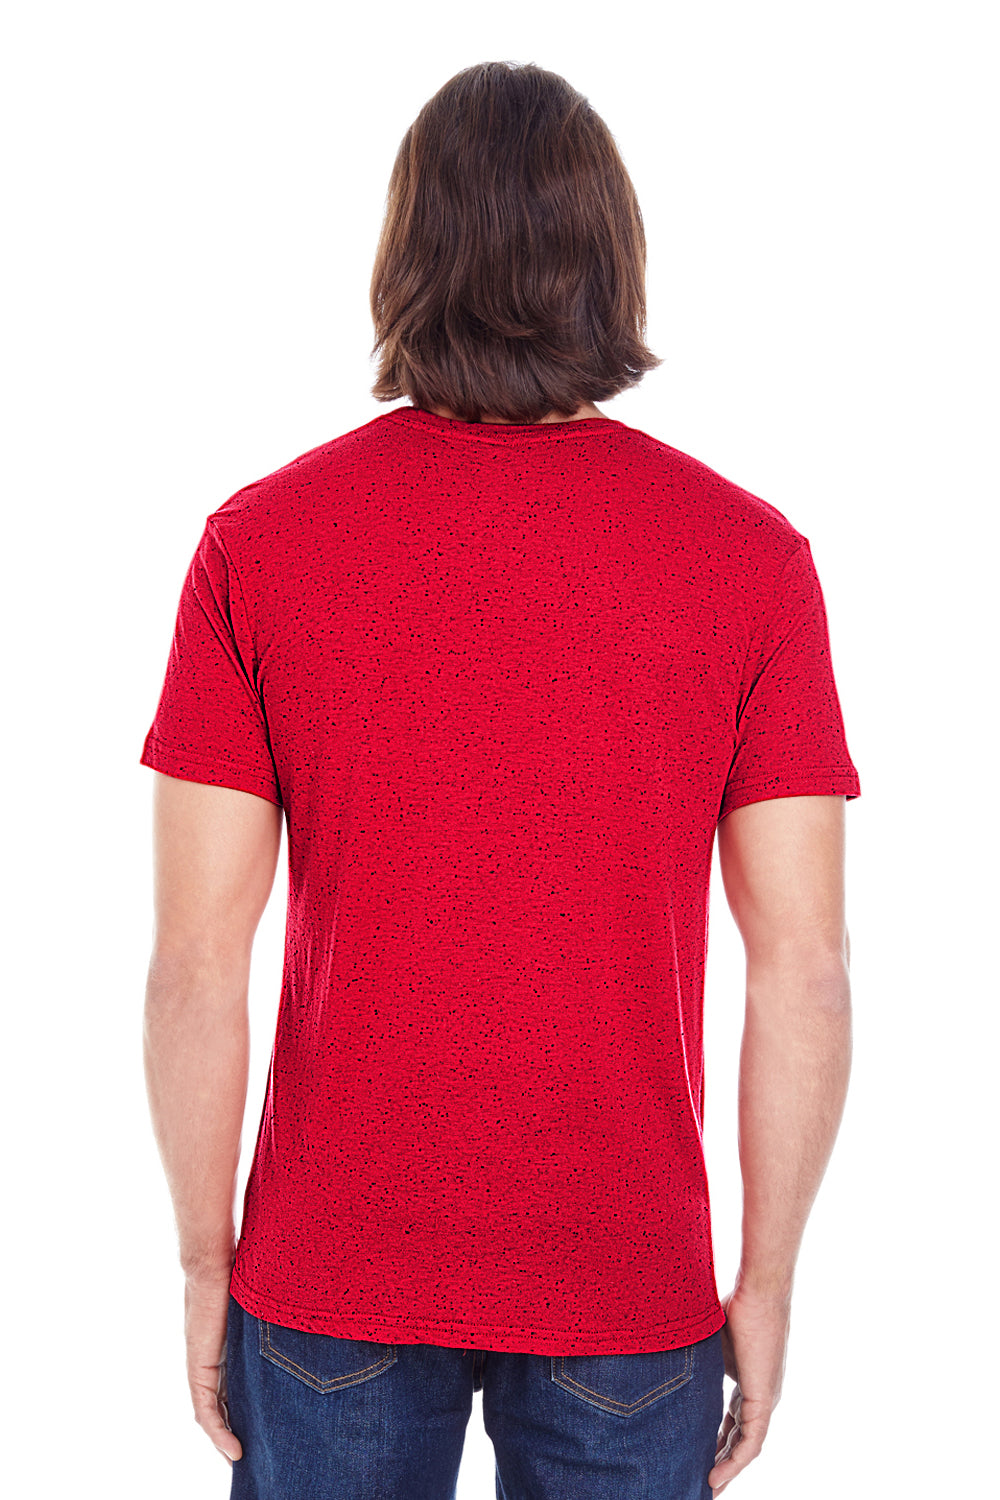 Threadfast Apparel 103A Mens Fleck Short Sleeve Crewneck T-Shirt Red Back